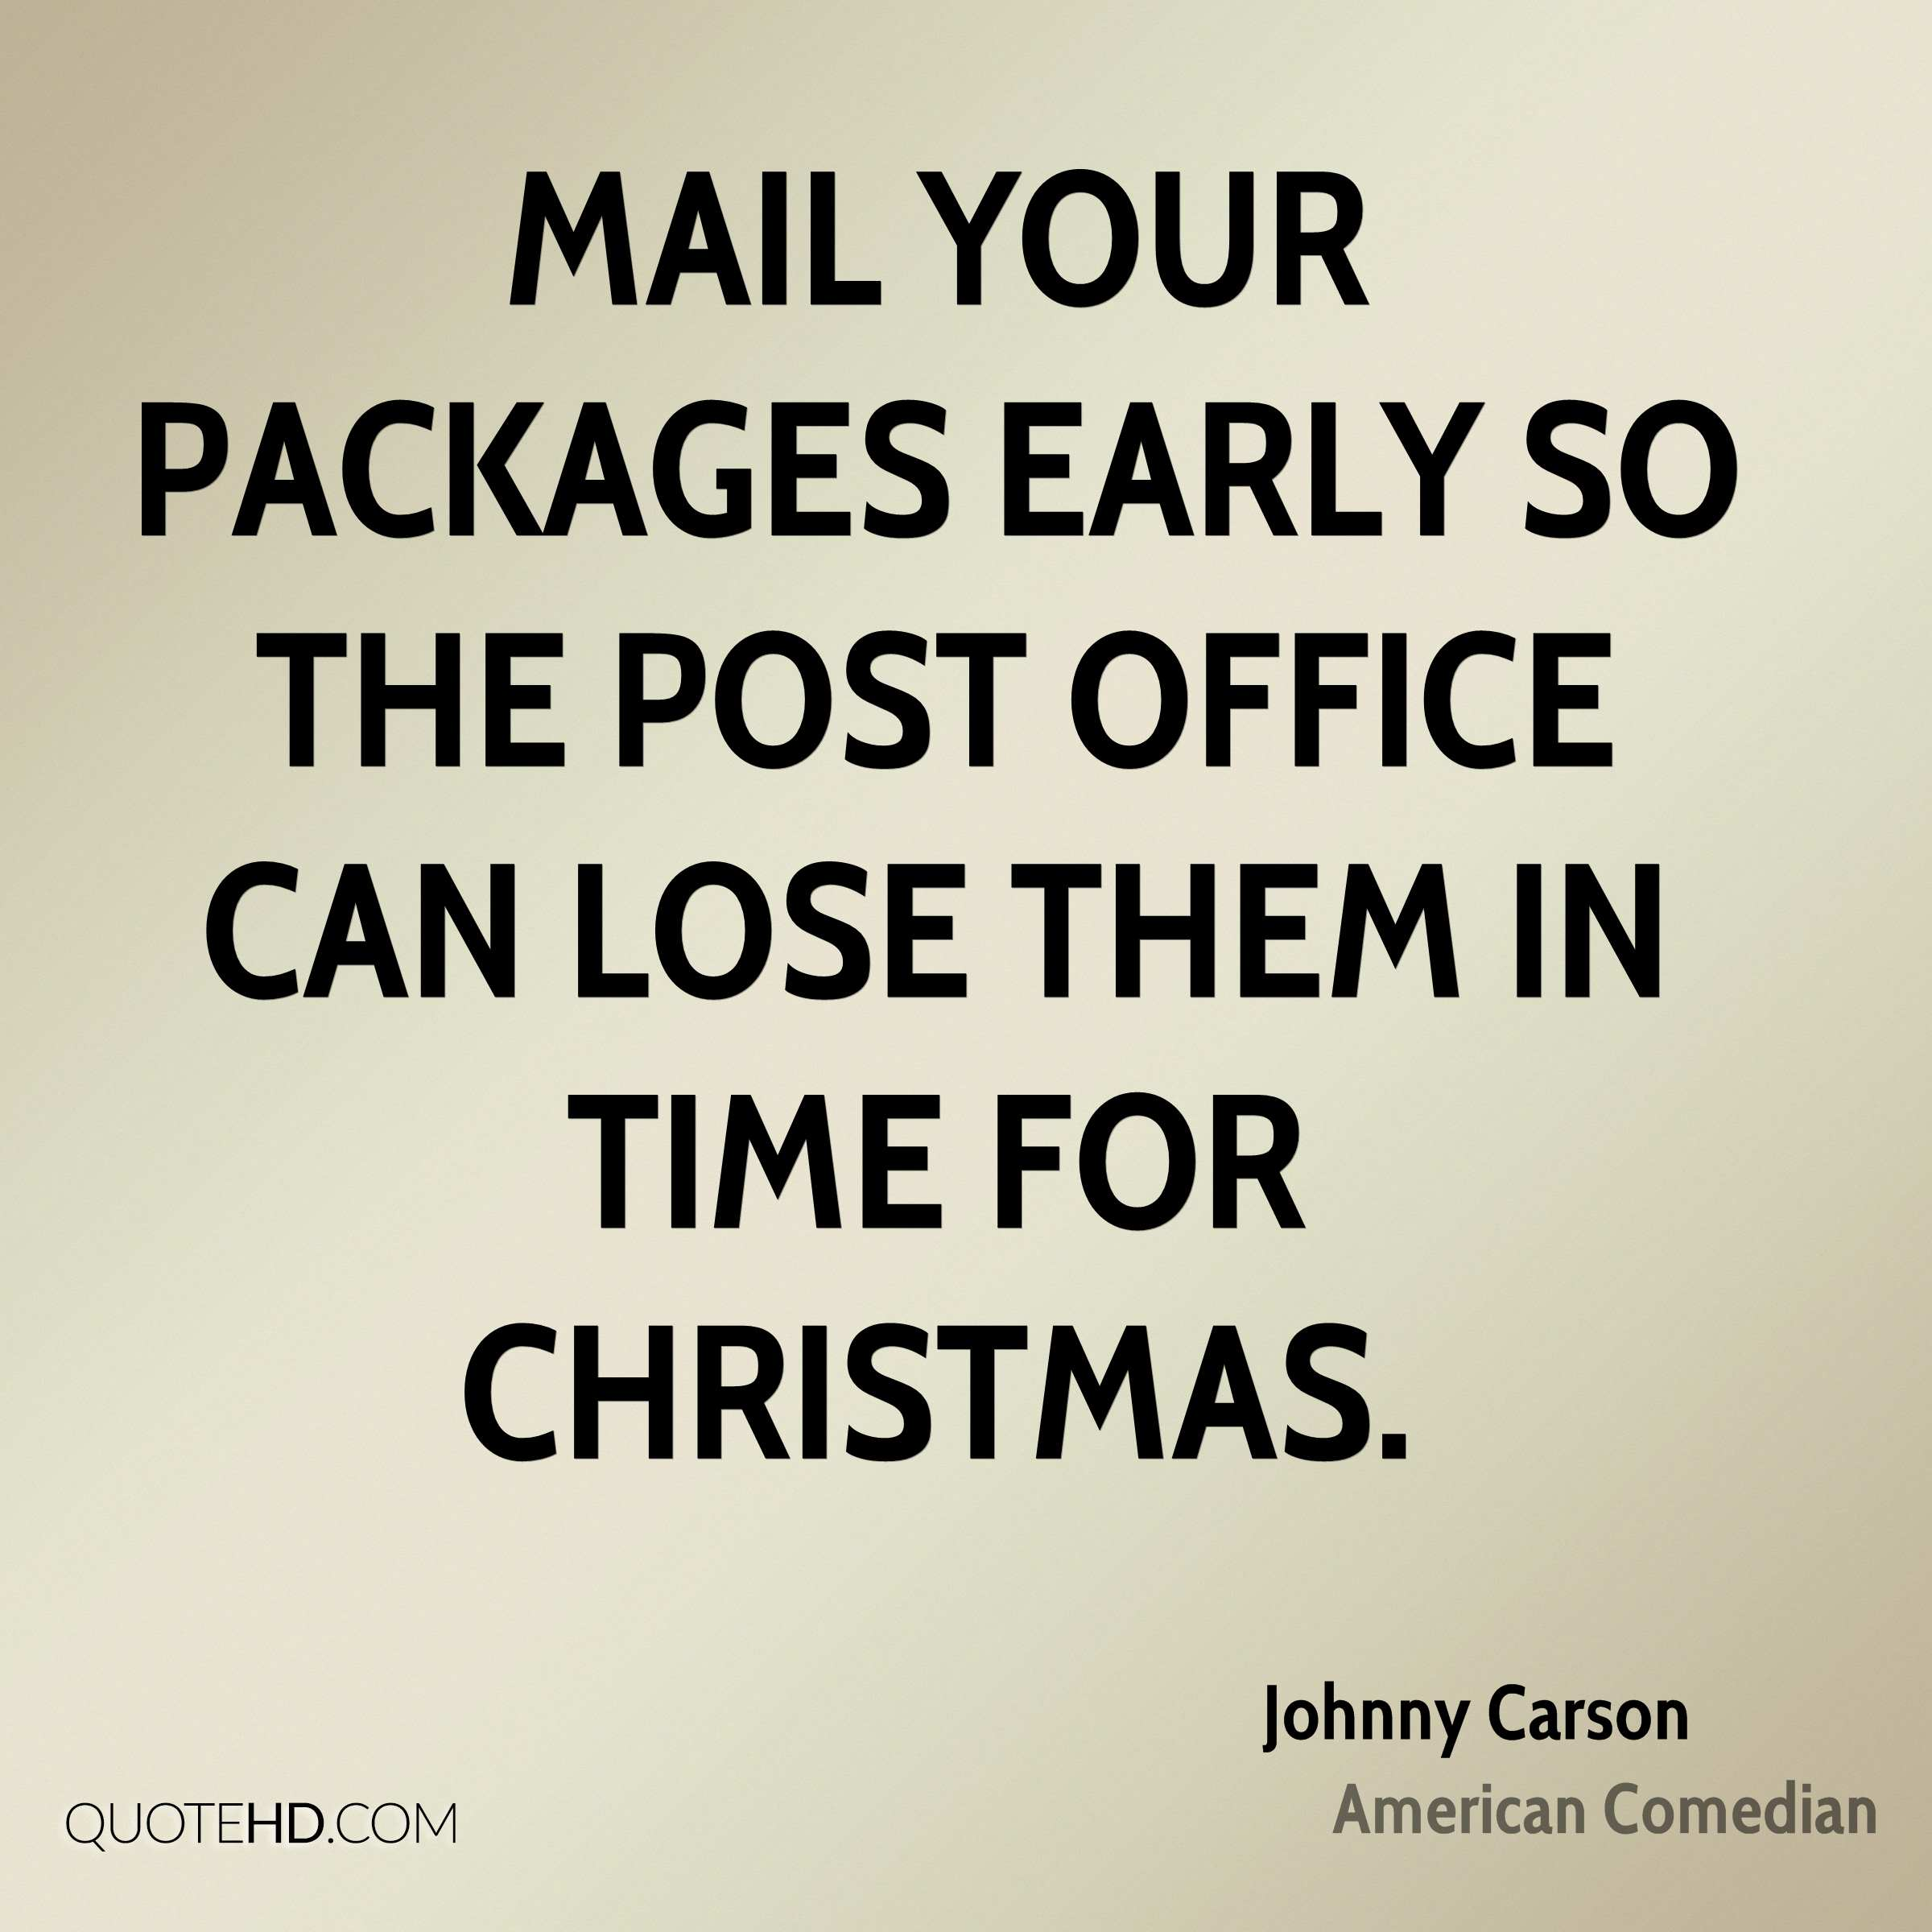 Mail your packages early so the post office can lose them in time for Christmas.